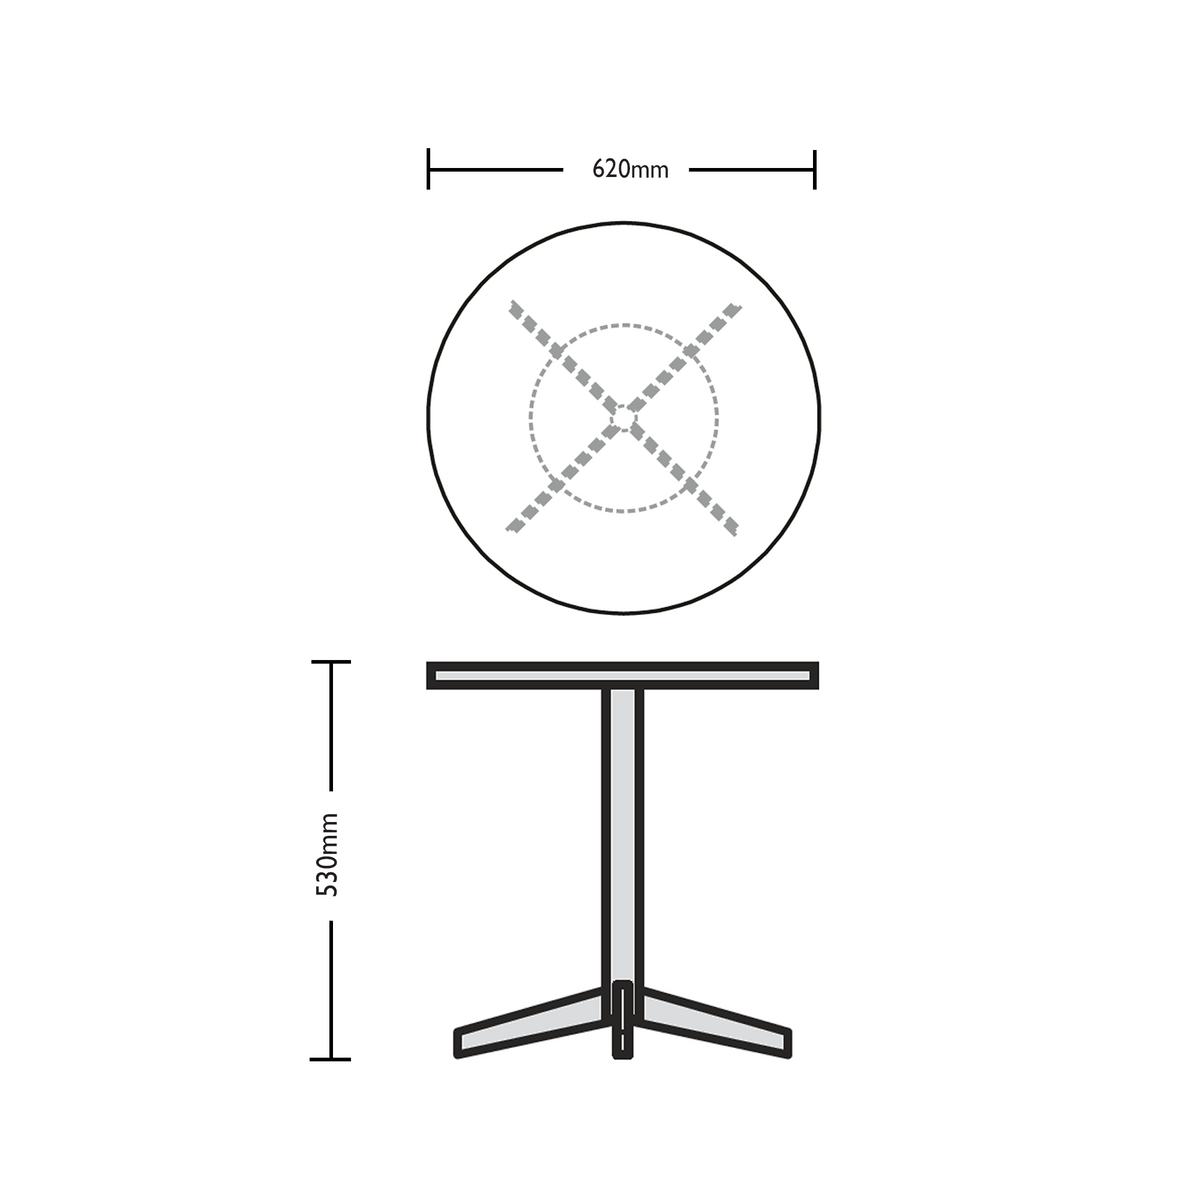 Dimensions for Edsbyn Marble Coffee Table